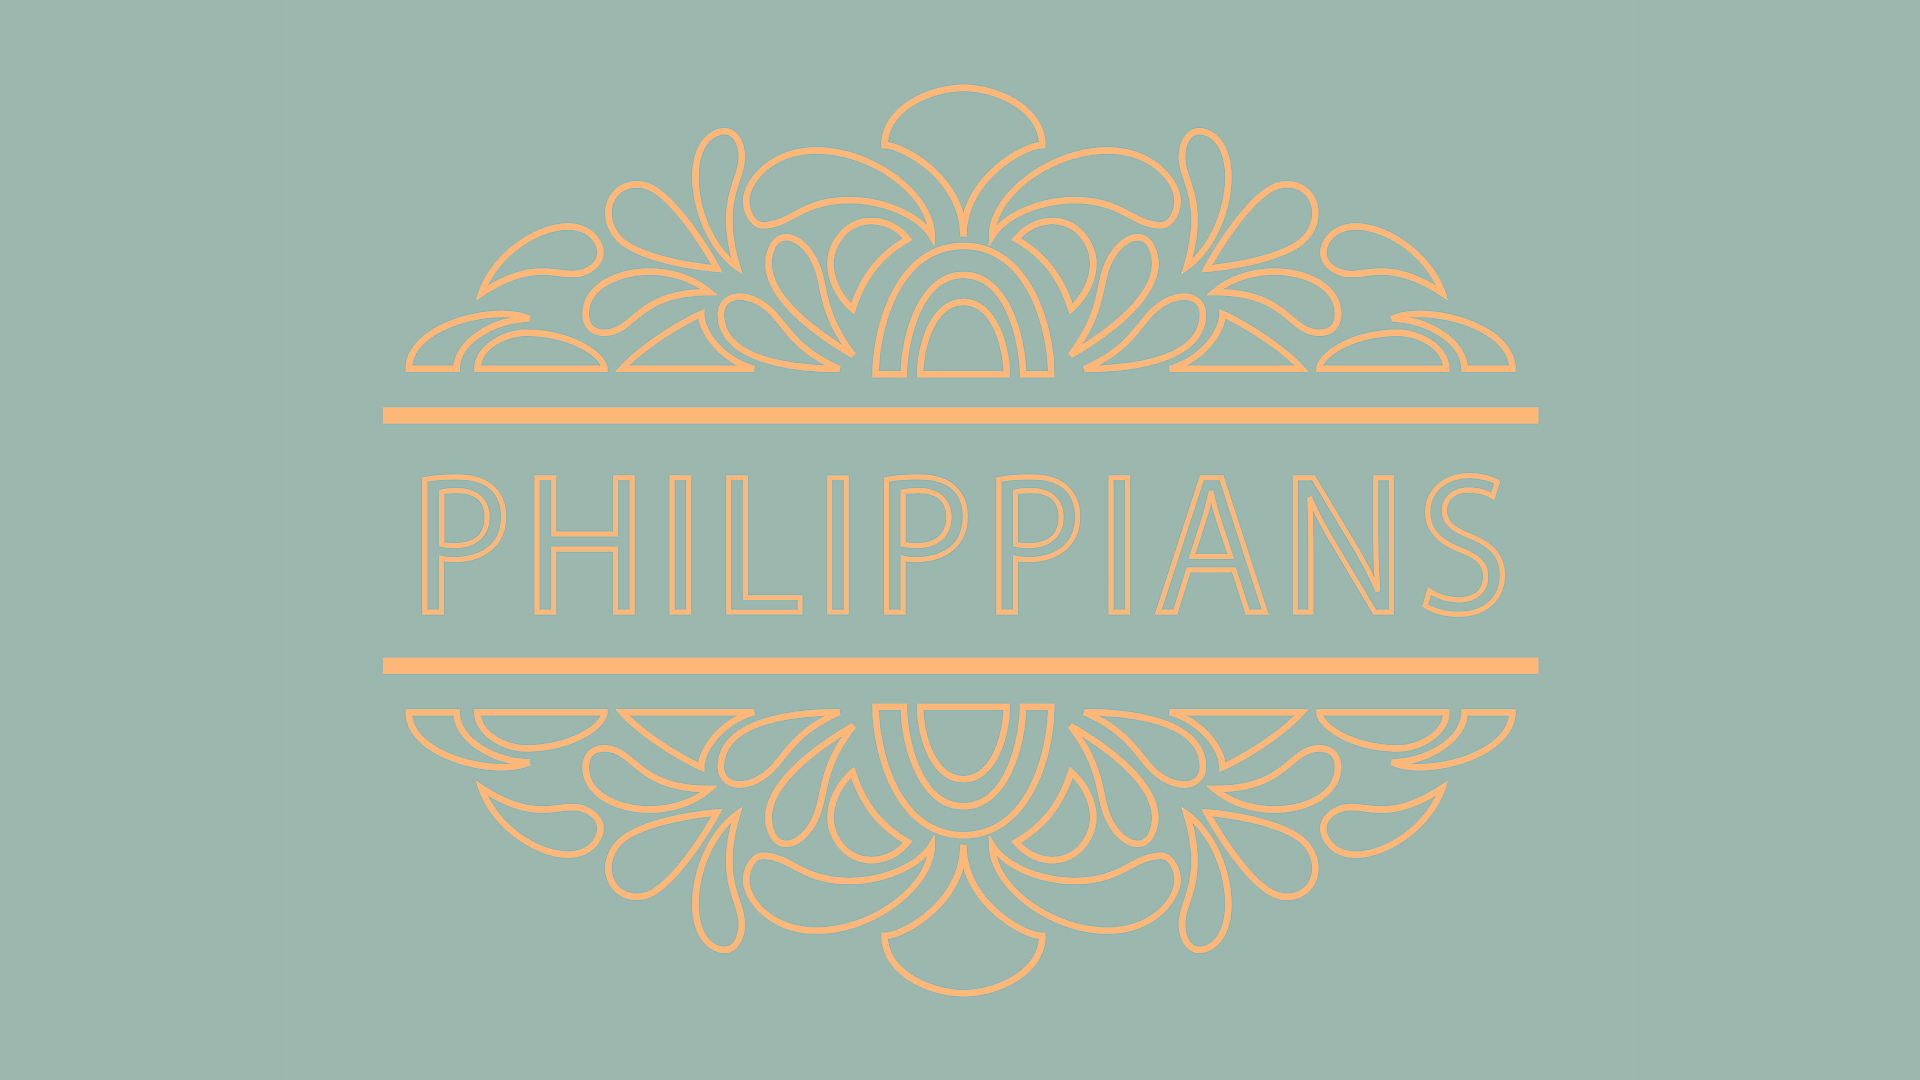 Philippians - Current Sermon Series